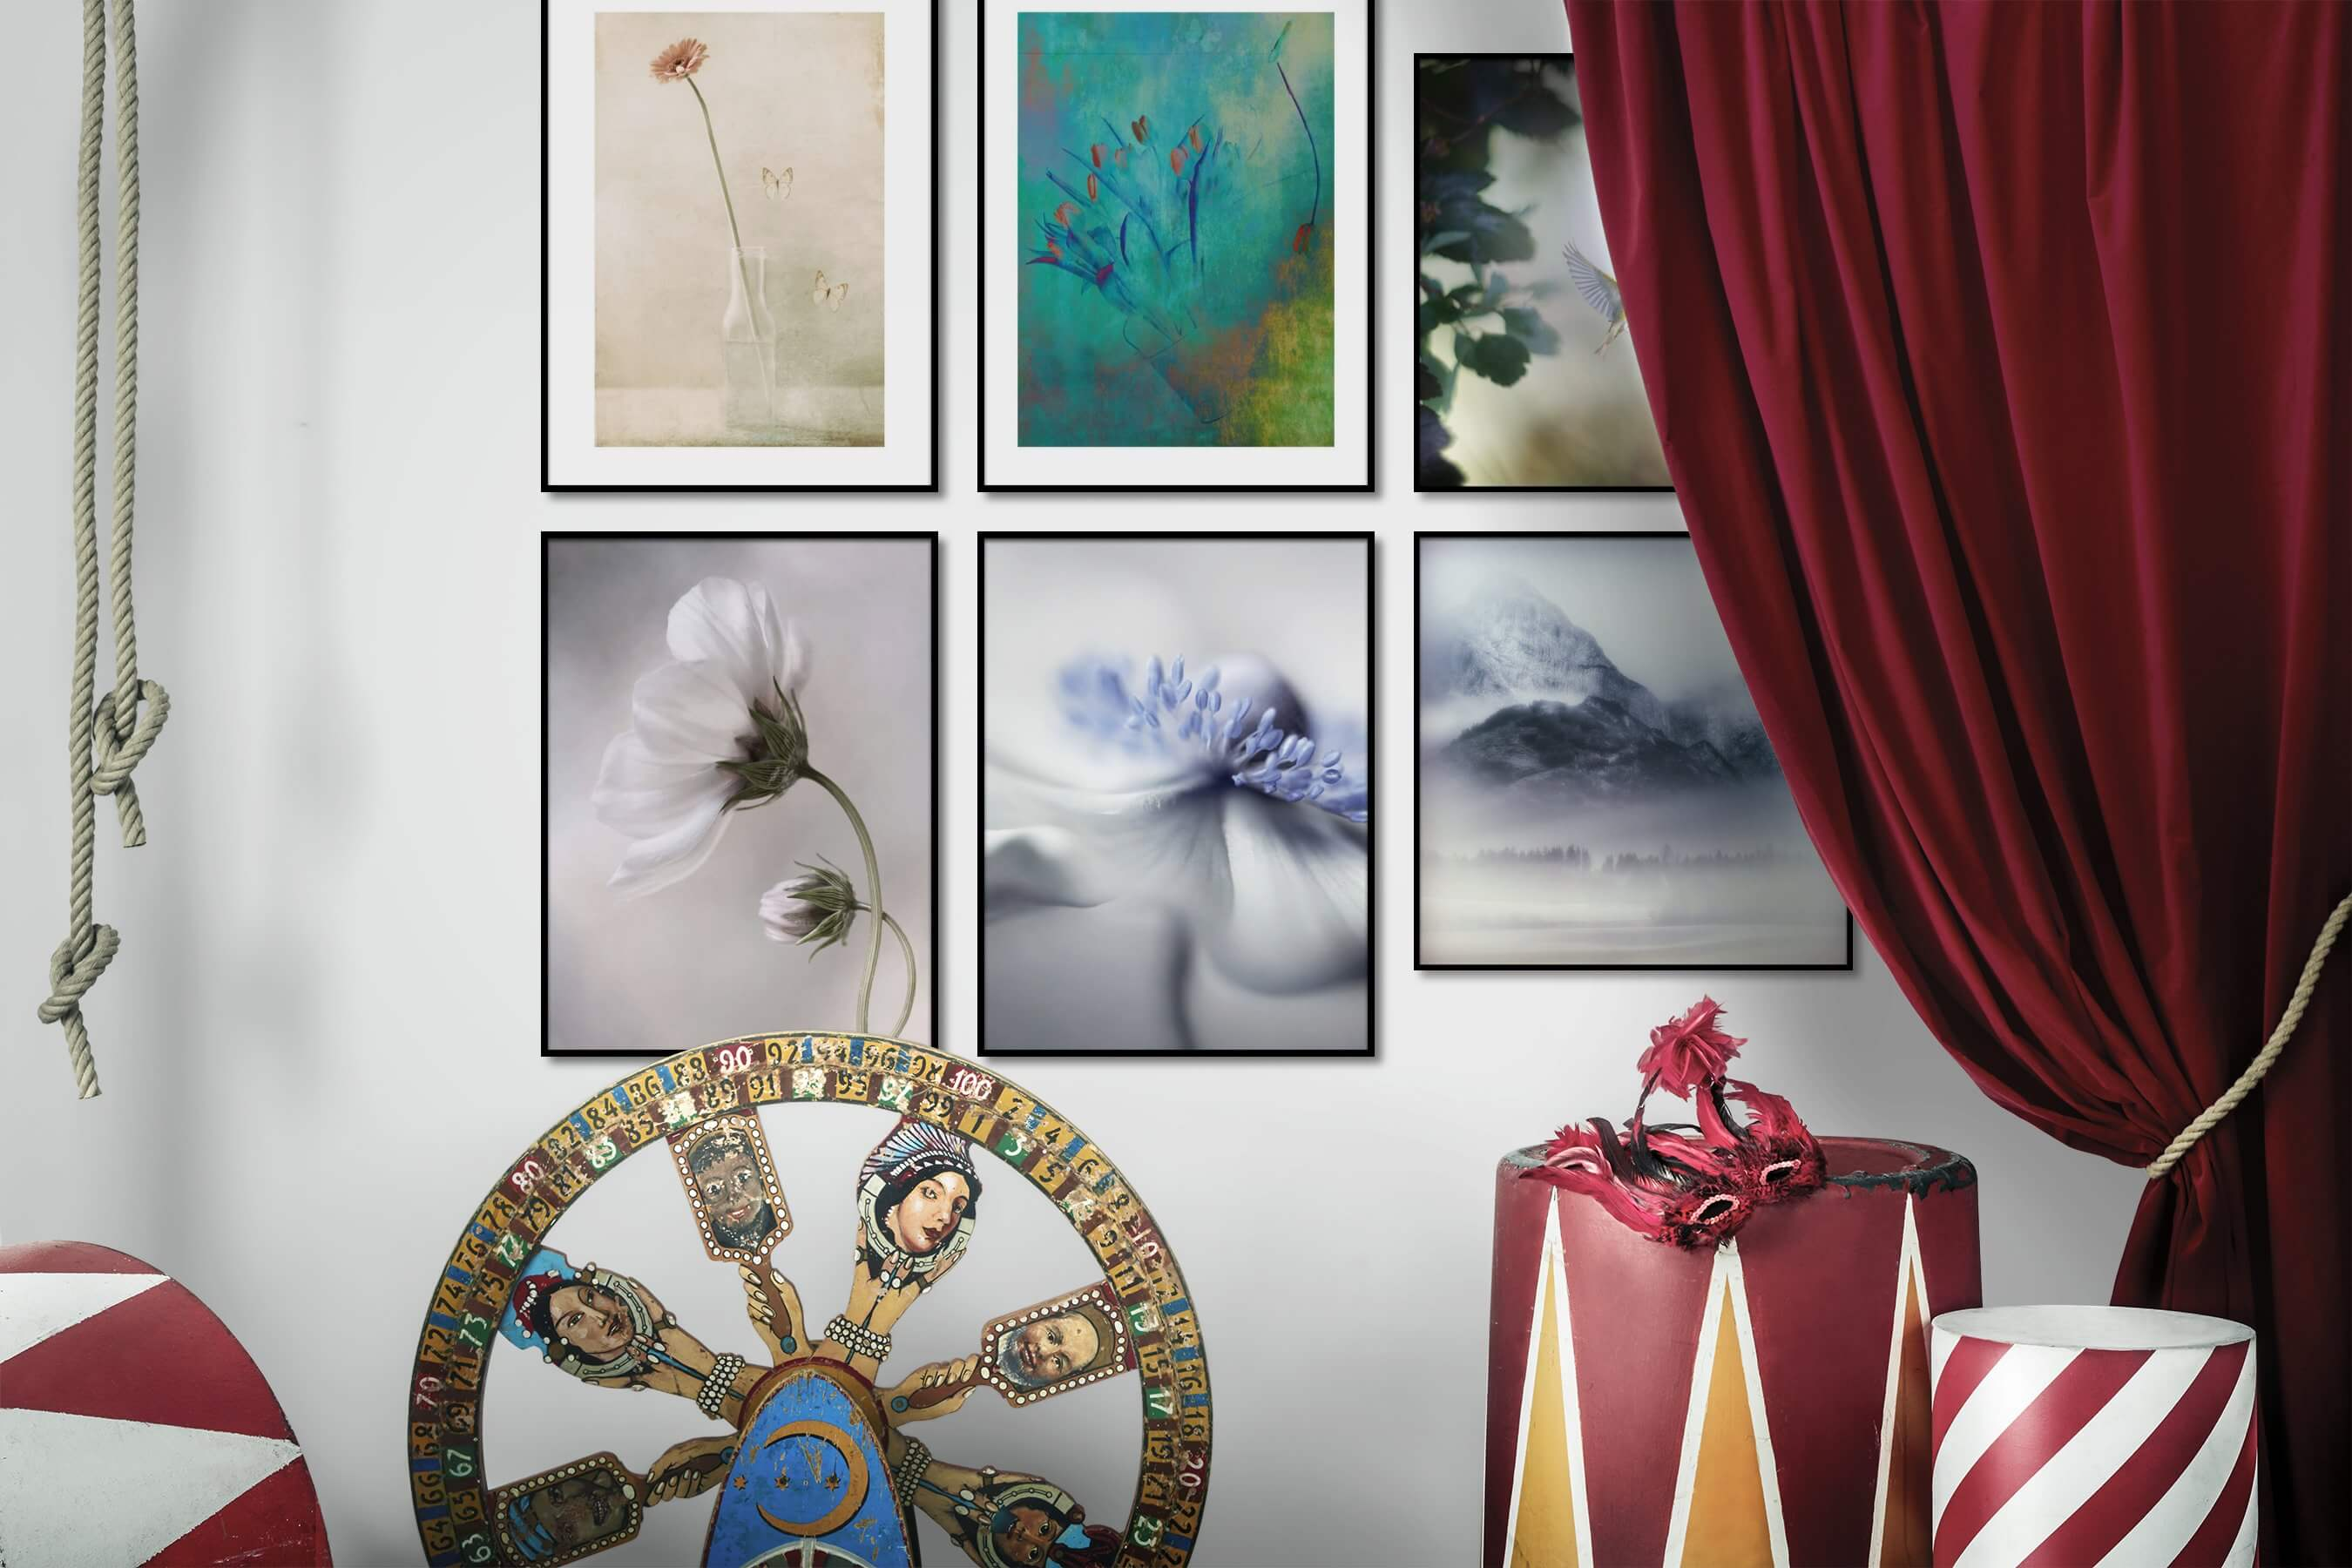 Gallery wall idea with six framed pictures arranged on a wall depicting Flowers & Plants, Vintage, For the Moderate, For the Minimalist, Animals, and Nature